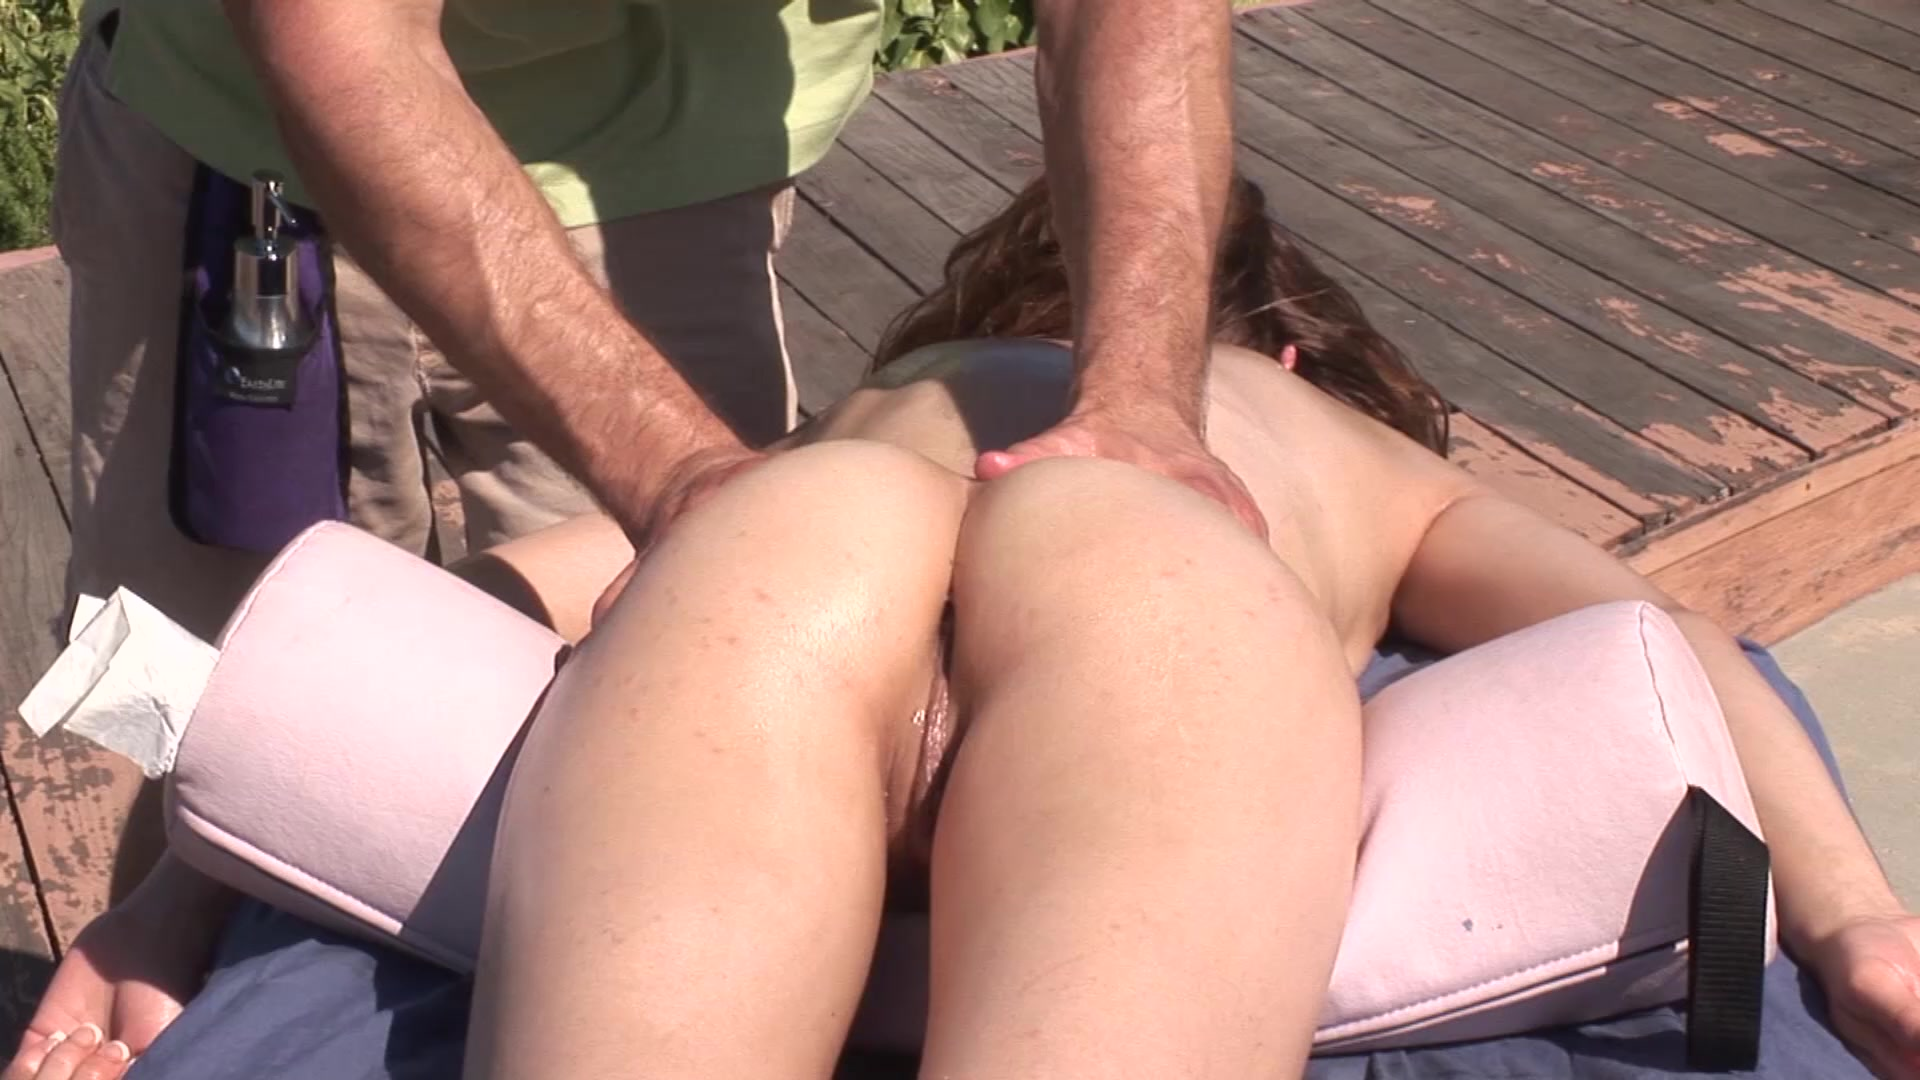 Malibu Massage Parlor #2